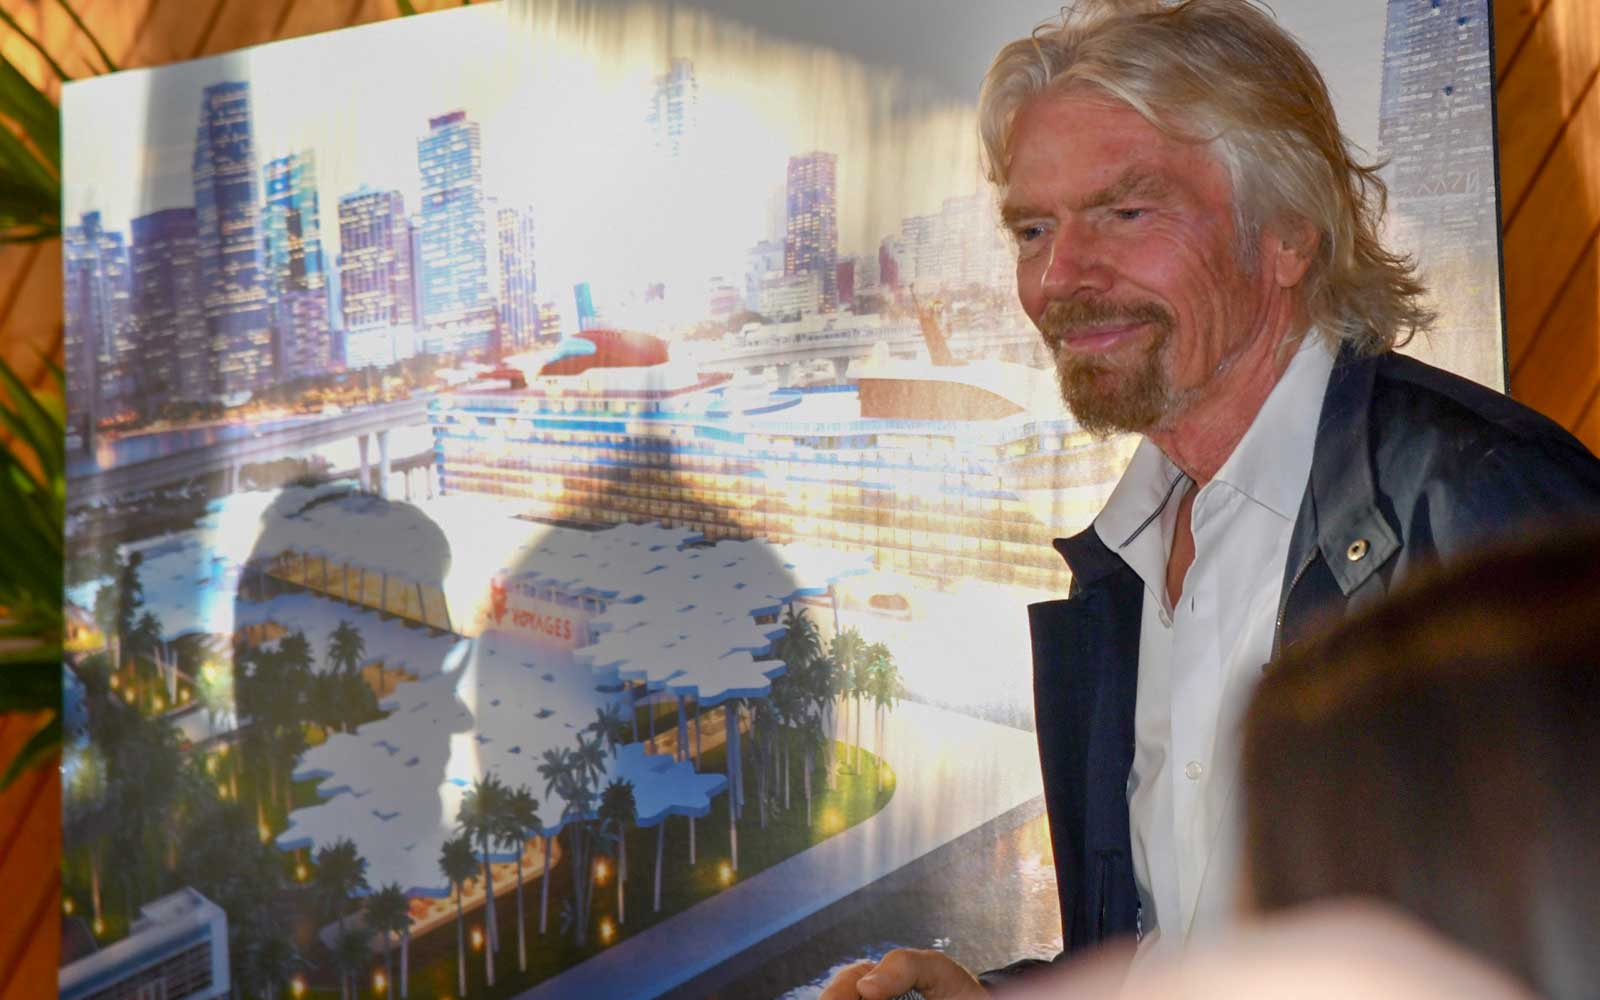 Richard Branson announces the Virgin Scarlet Lady cruise ship